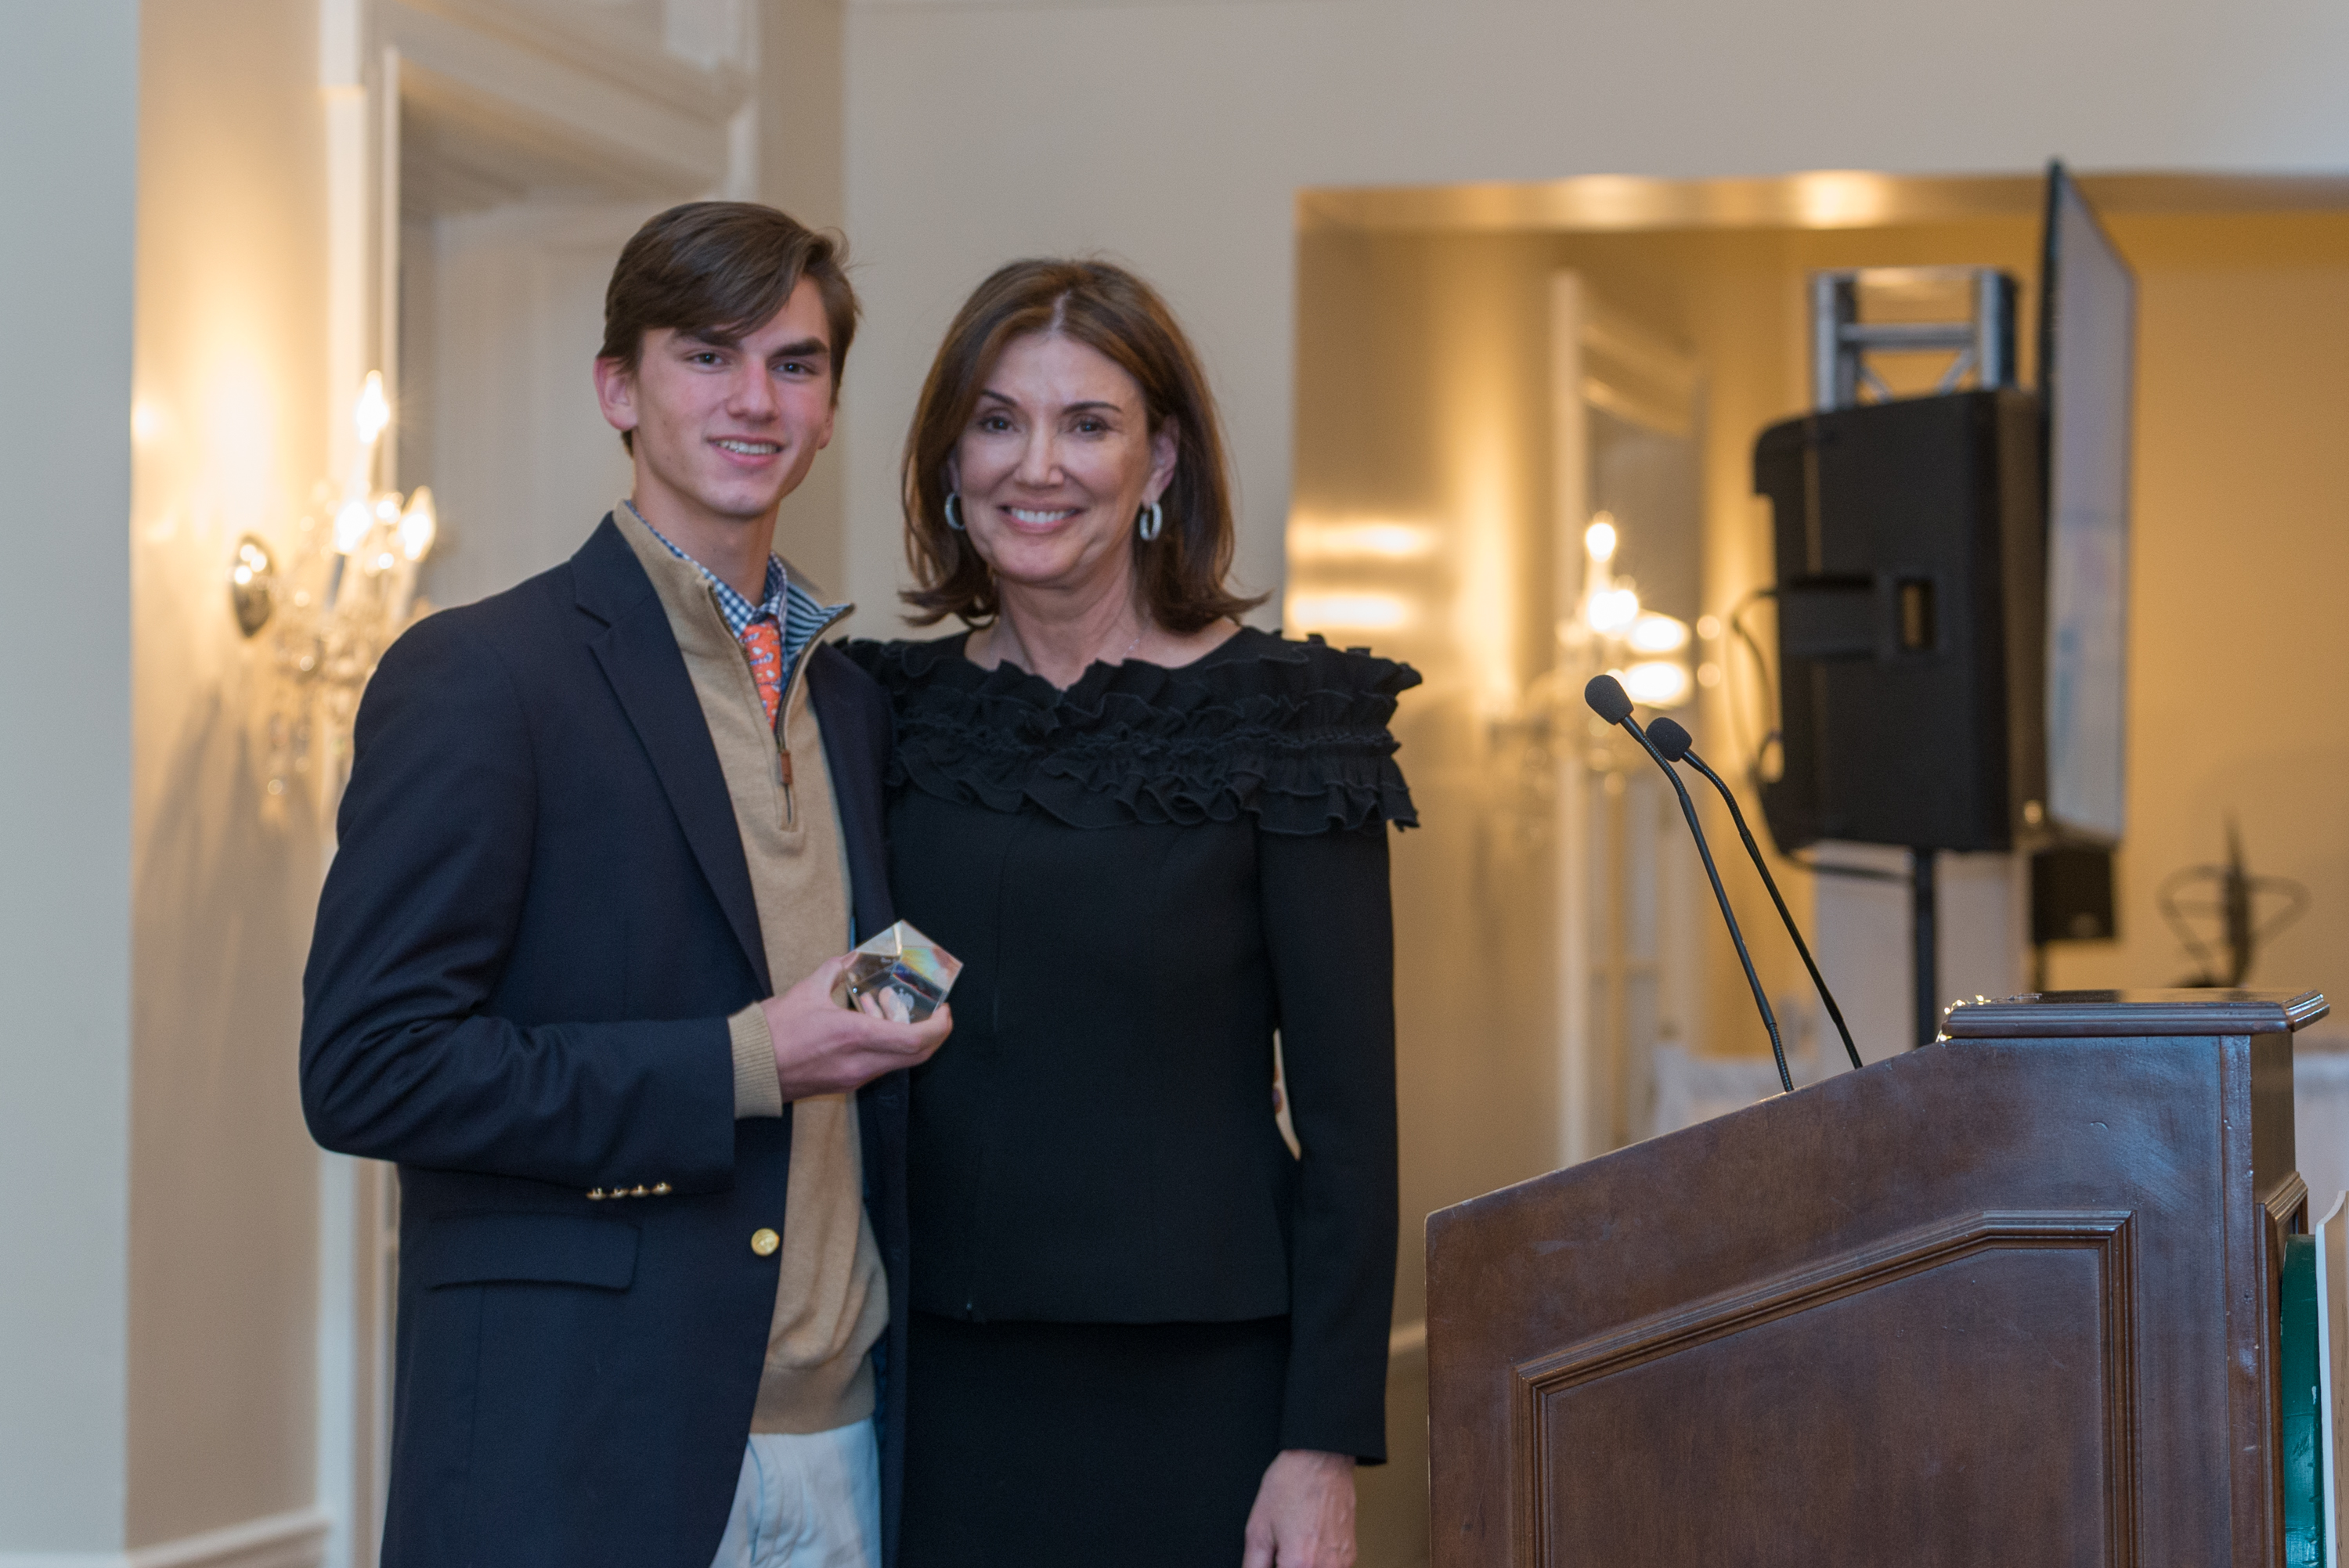 Sebastian Cobb, Brunswick School, Youth Service Award, presented by Ann Heekin